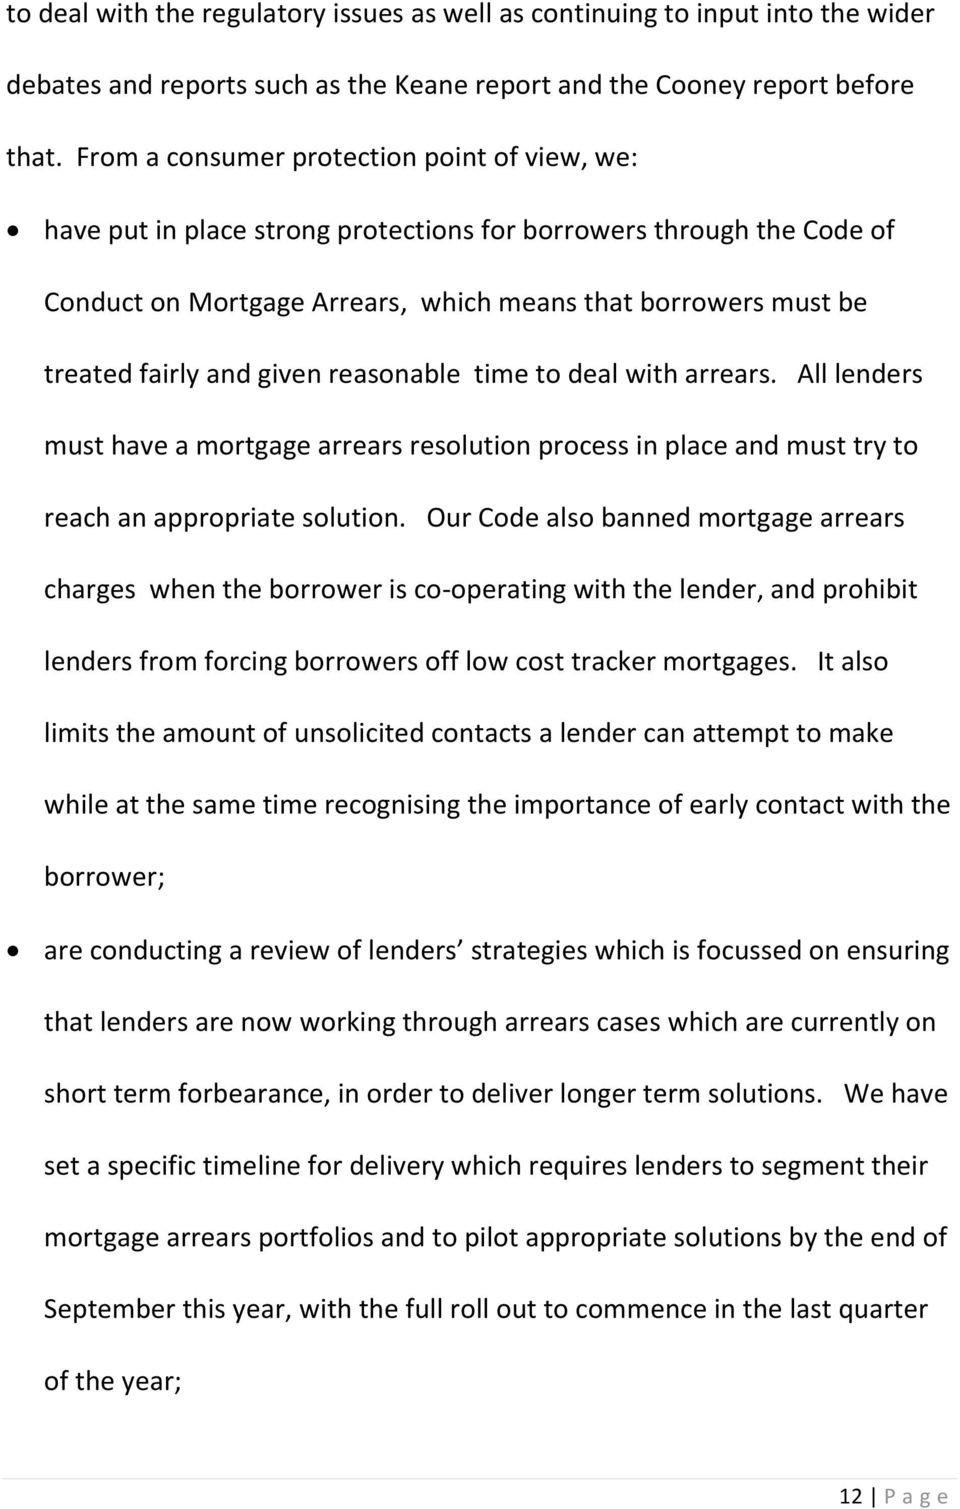 given reasonable time to deal with arrears. All lenders must have a mortgage arrears resolution process in place and must try to reach an appropriate solution.